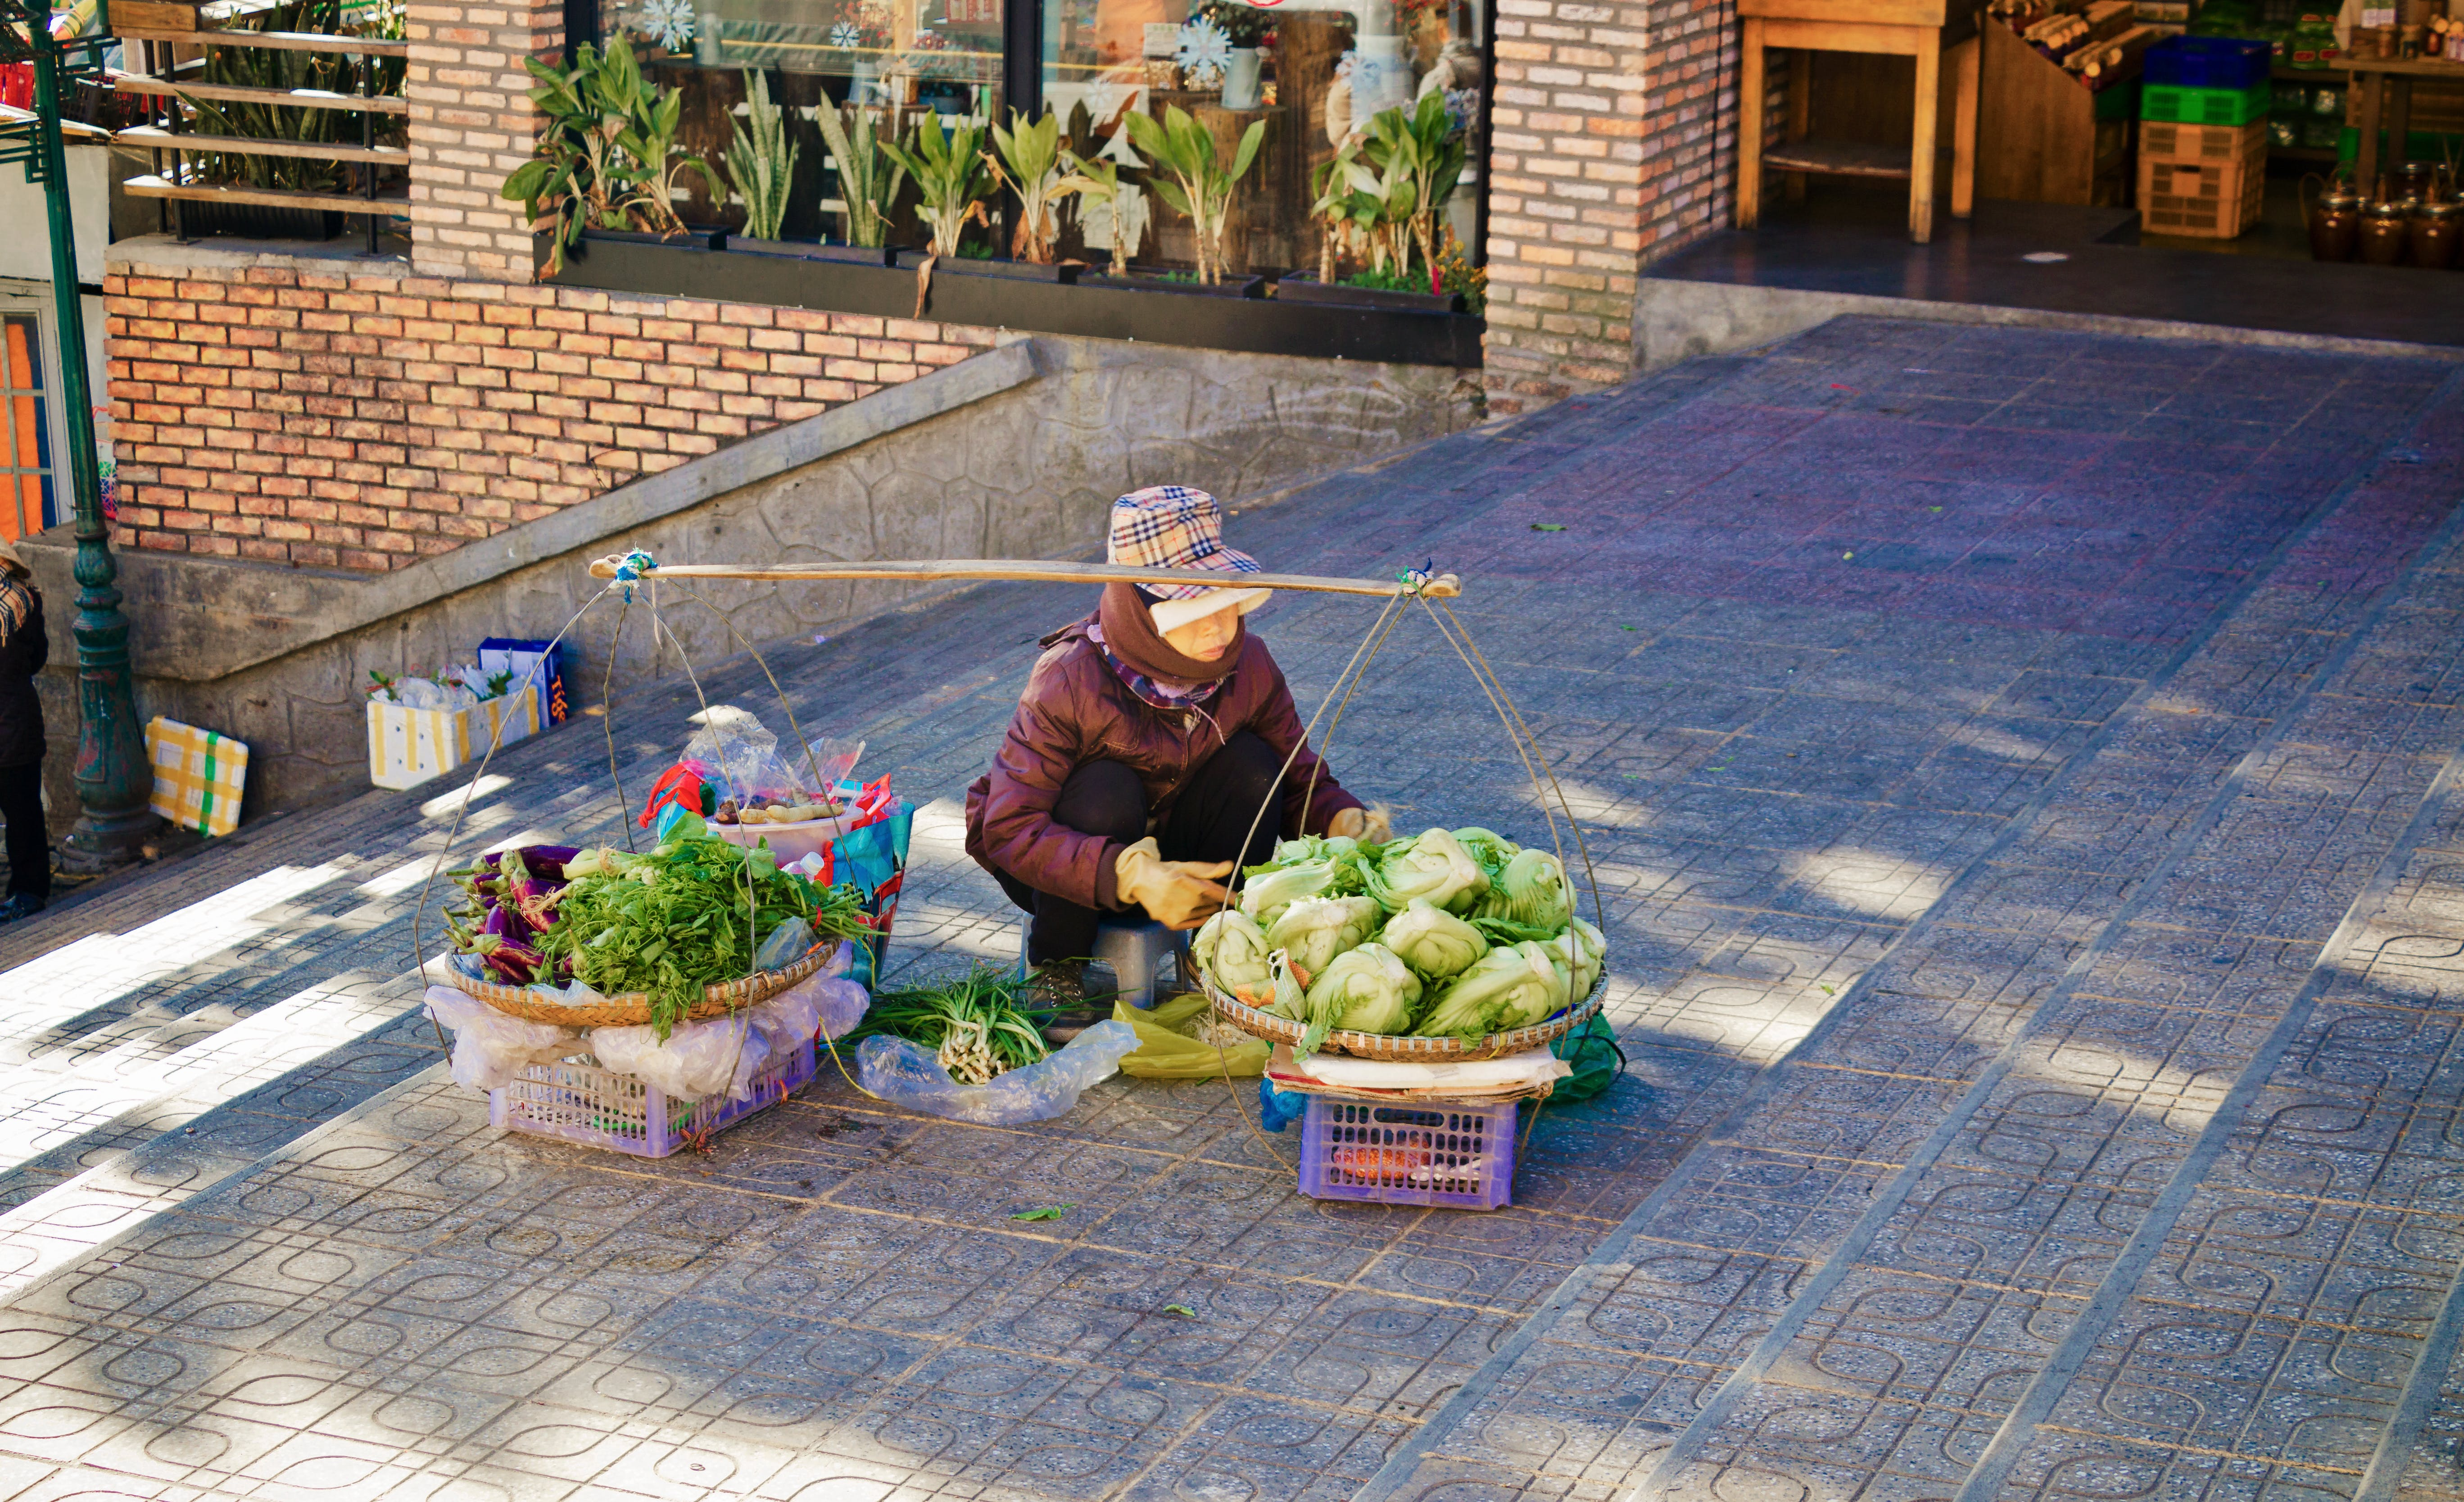 Vegetable Vendor Near Stairs